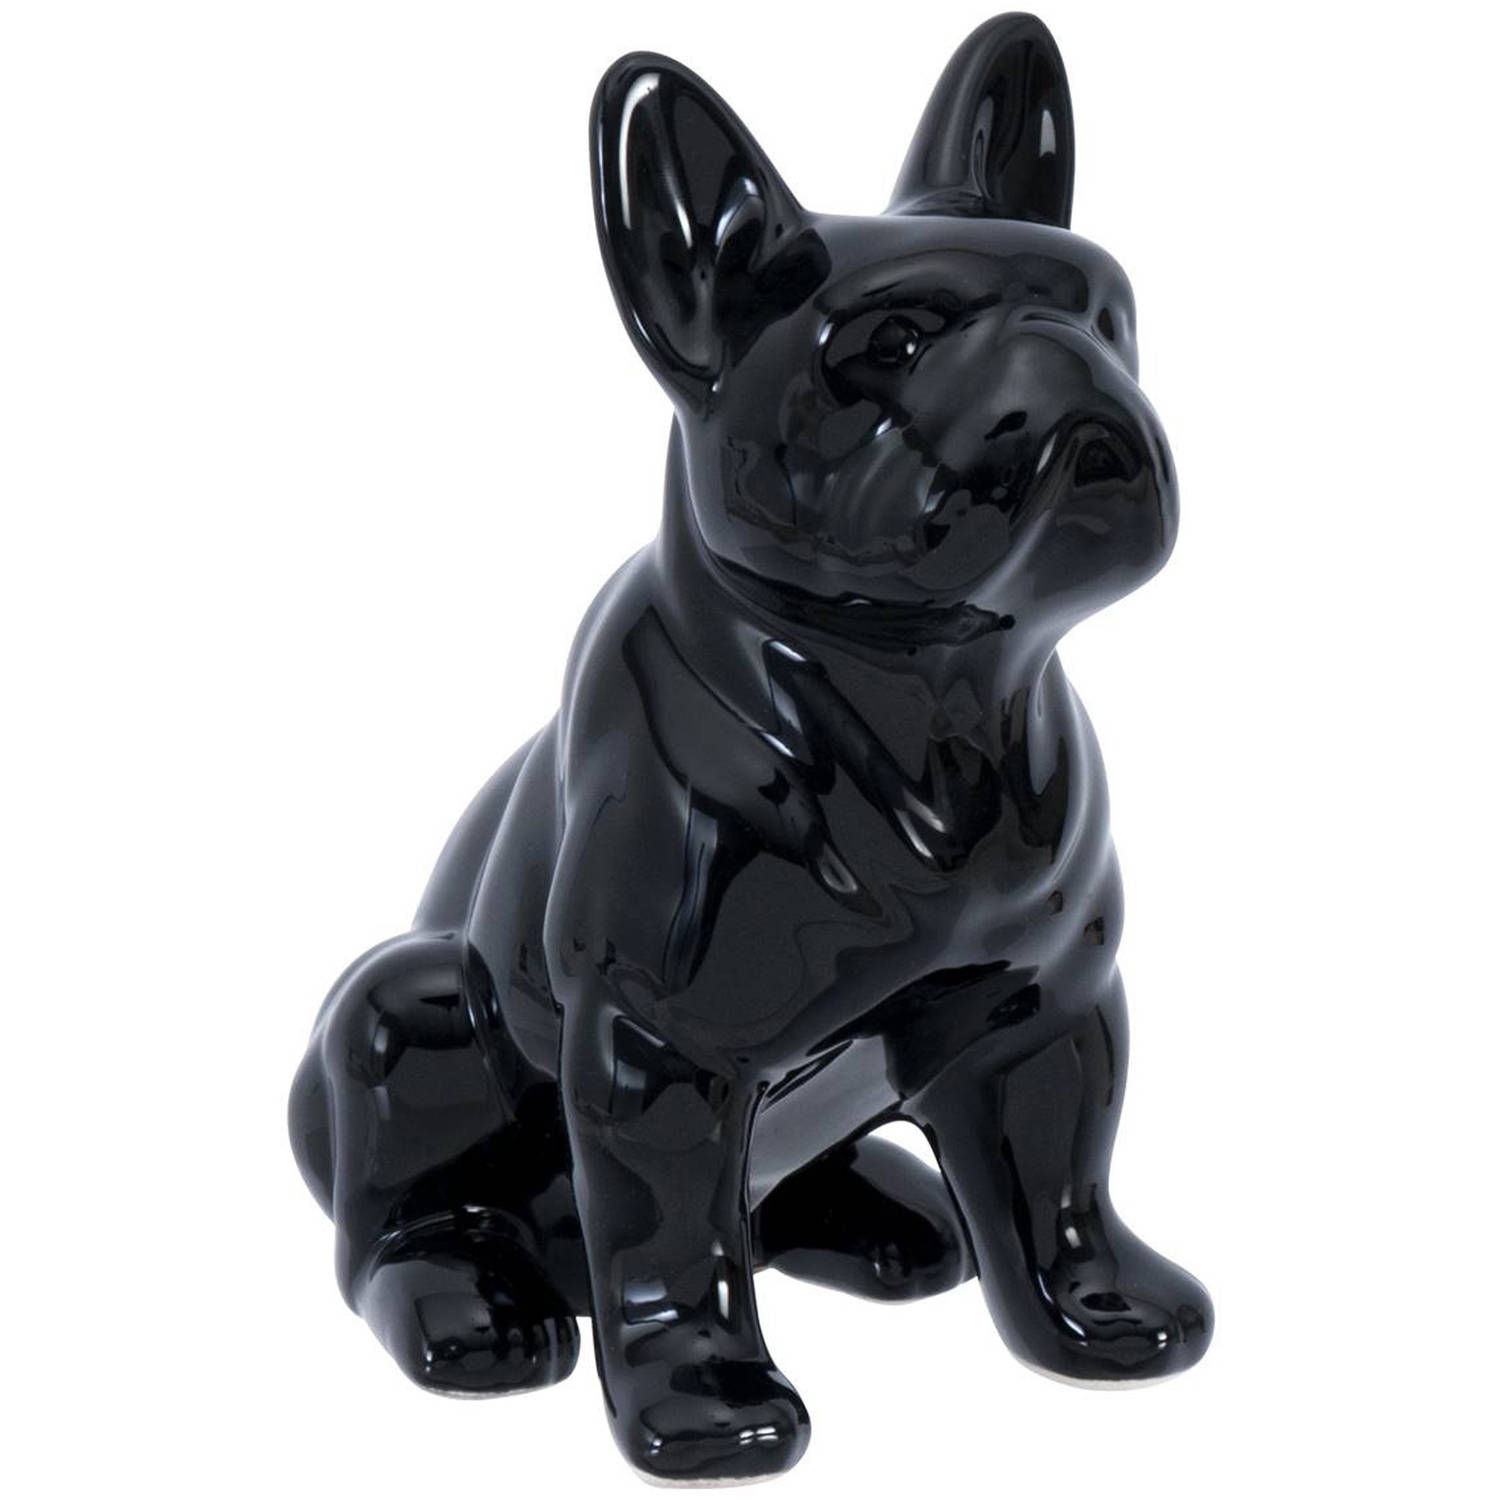 Elements Black Ceramic Bull Dog Figurine, Black by Lifetime Brands